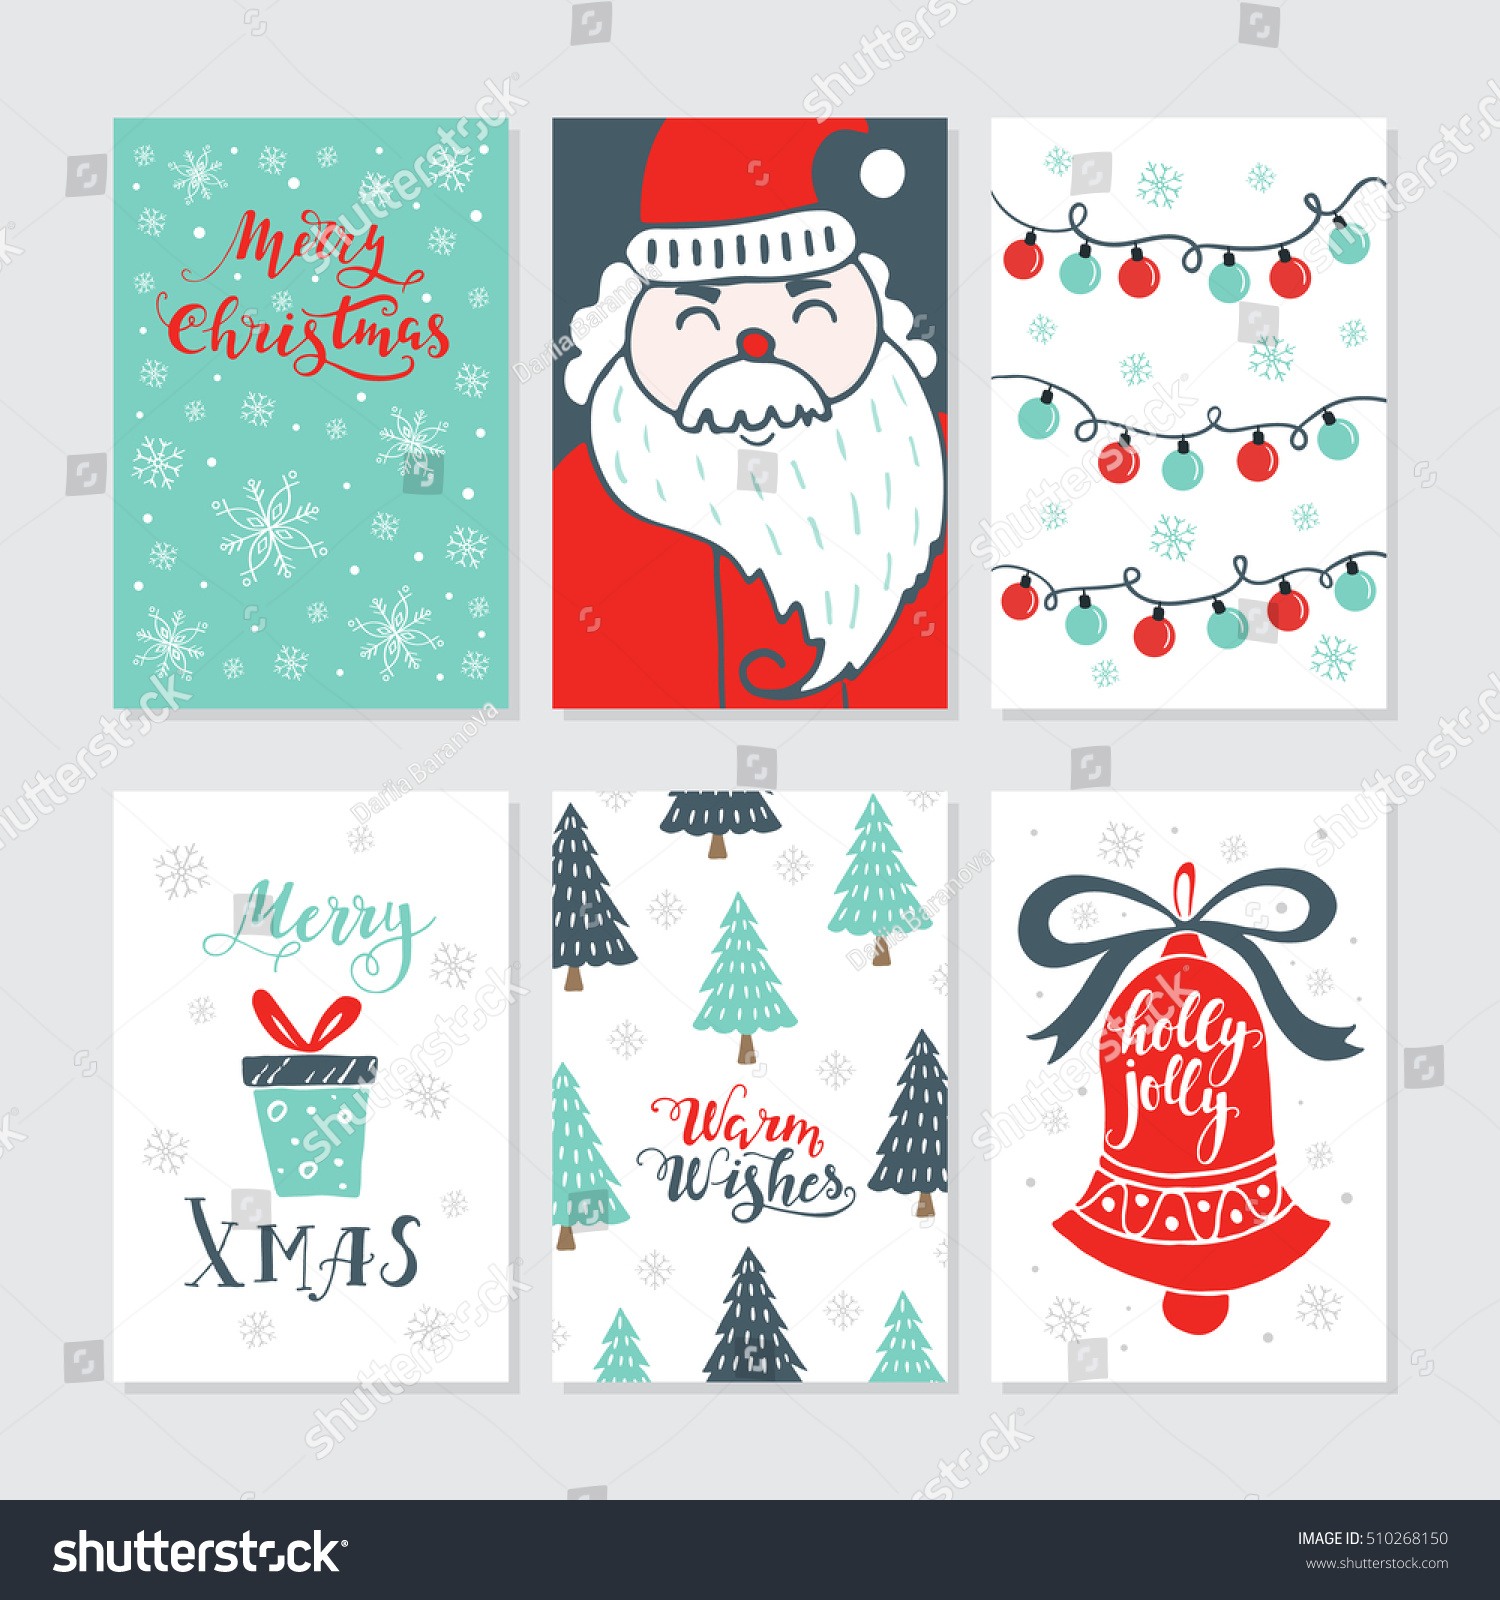 Vector merry christmas greeting cards invitations stock vector vector merry christmas greeting cards and invitations isolated on background set with cute xmas tree kristyandbryce Gallery